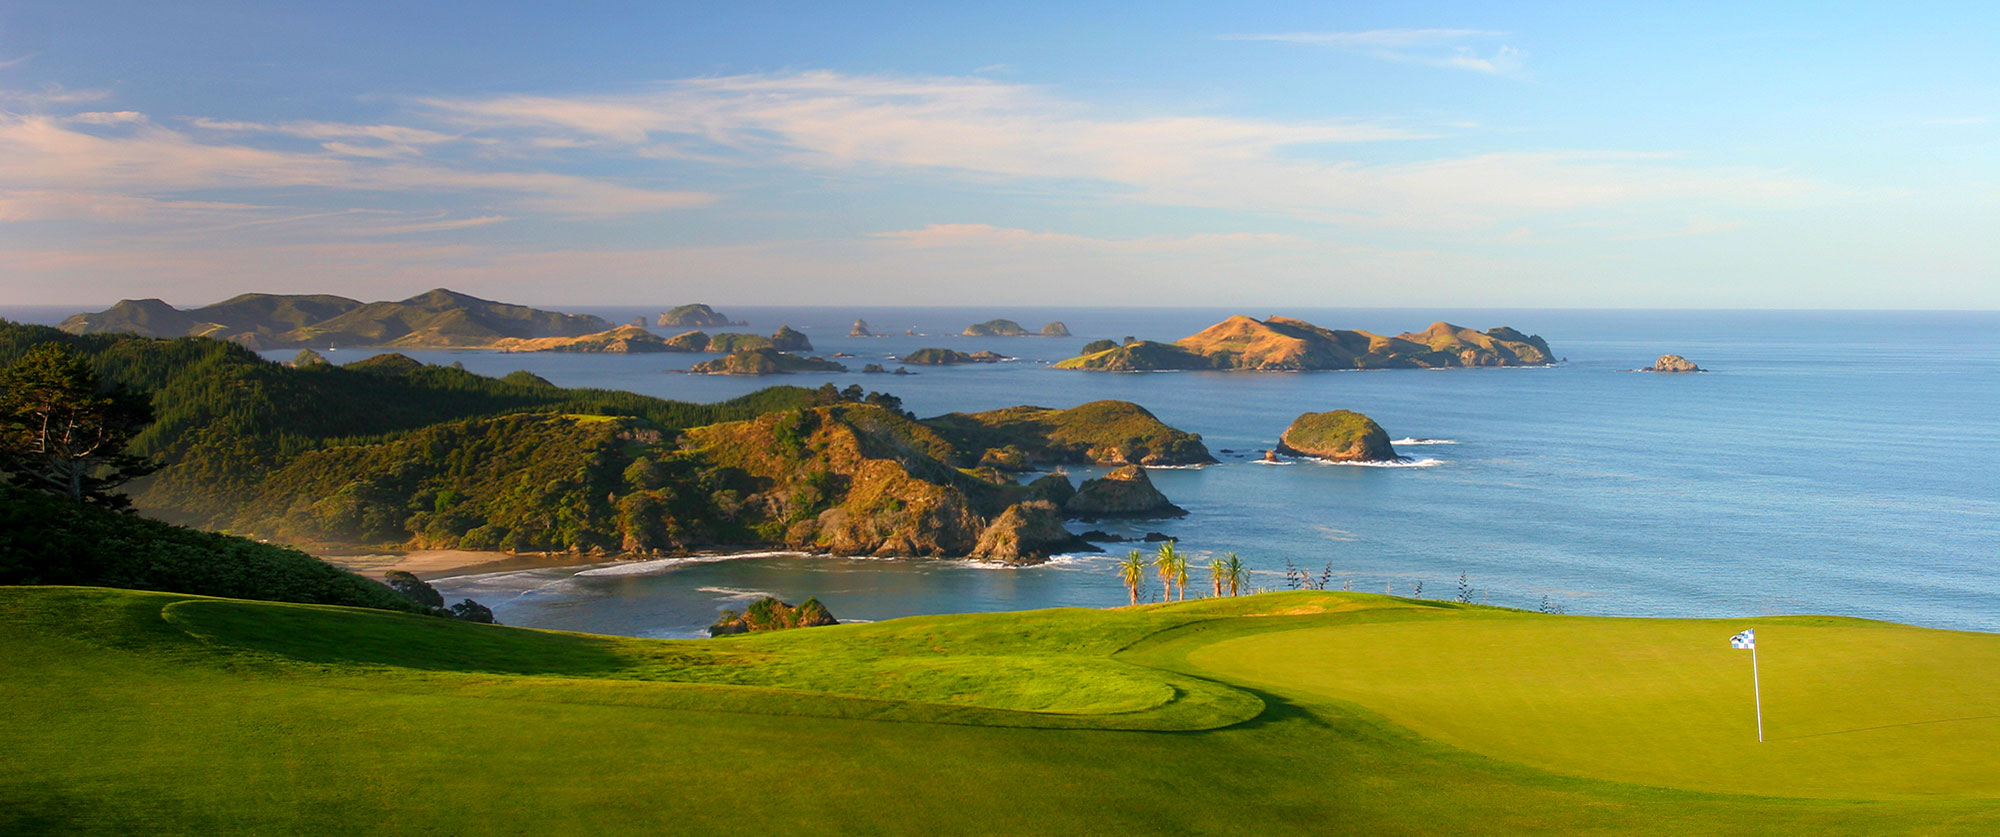 Australia New Zealand Golf Tailor Made Trips By Golfers